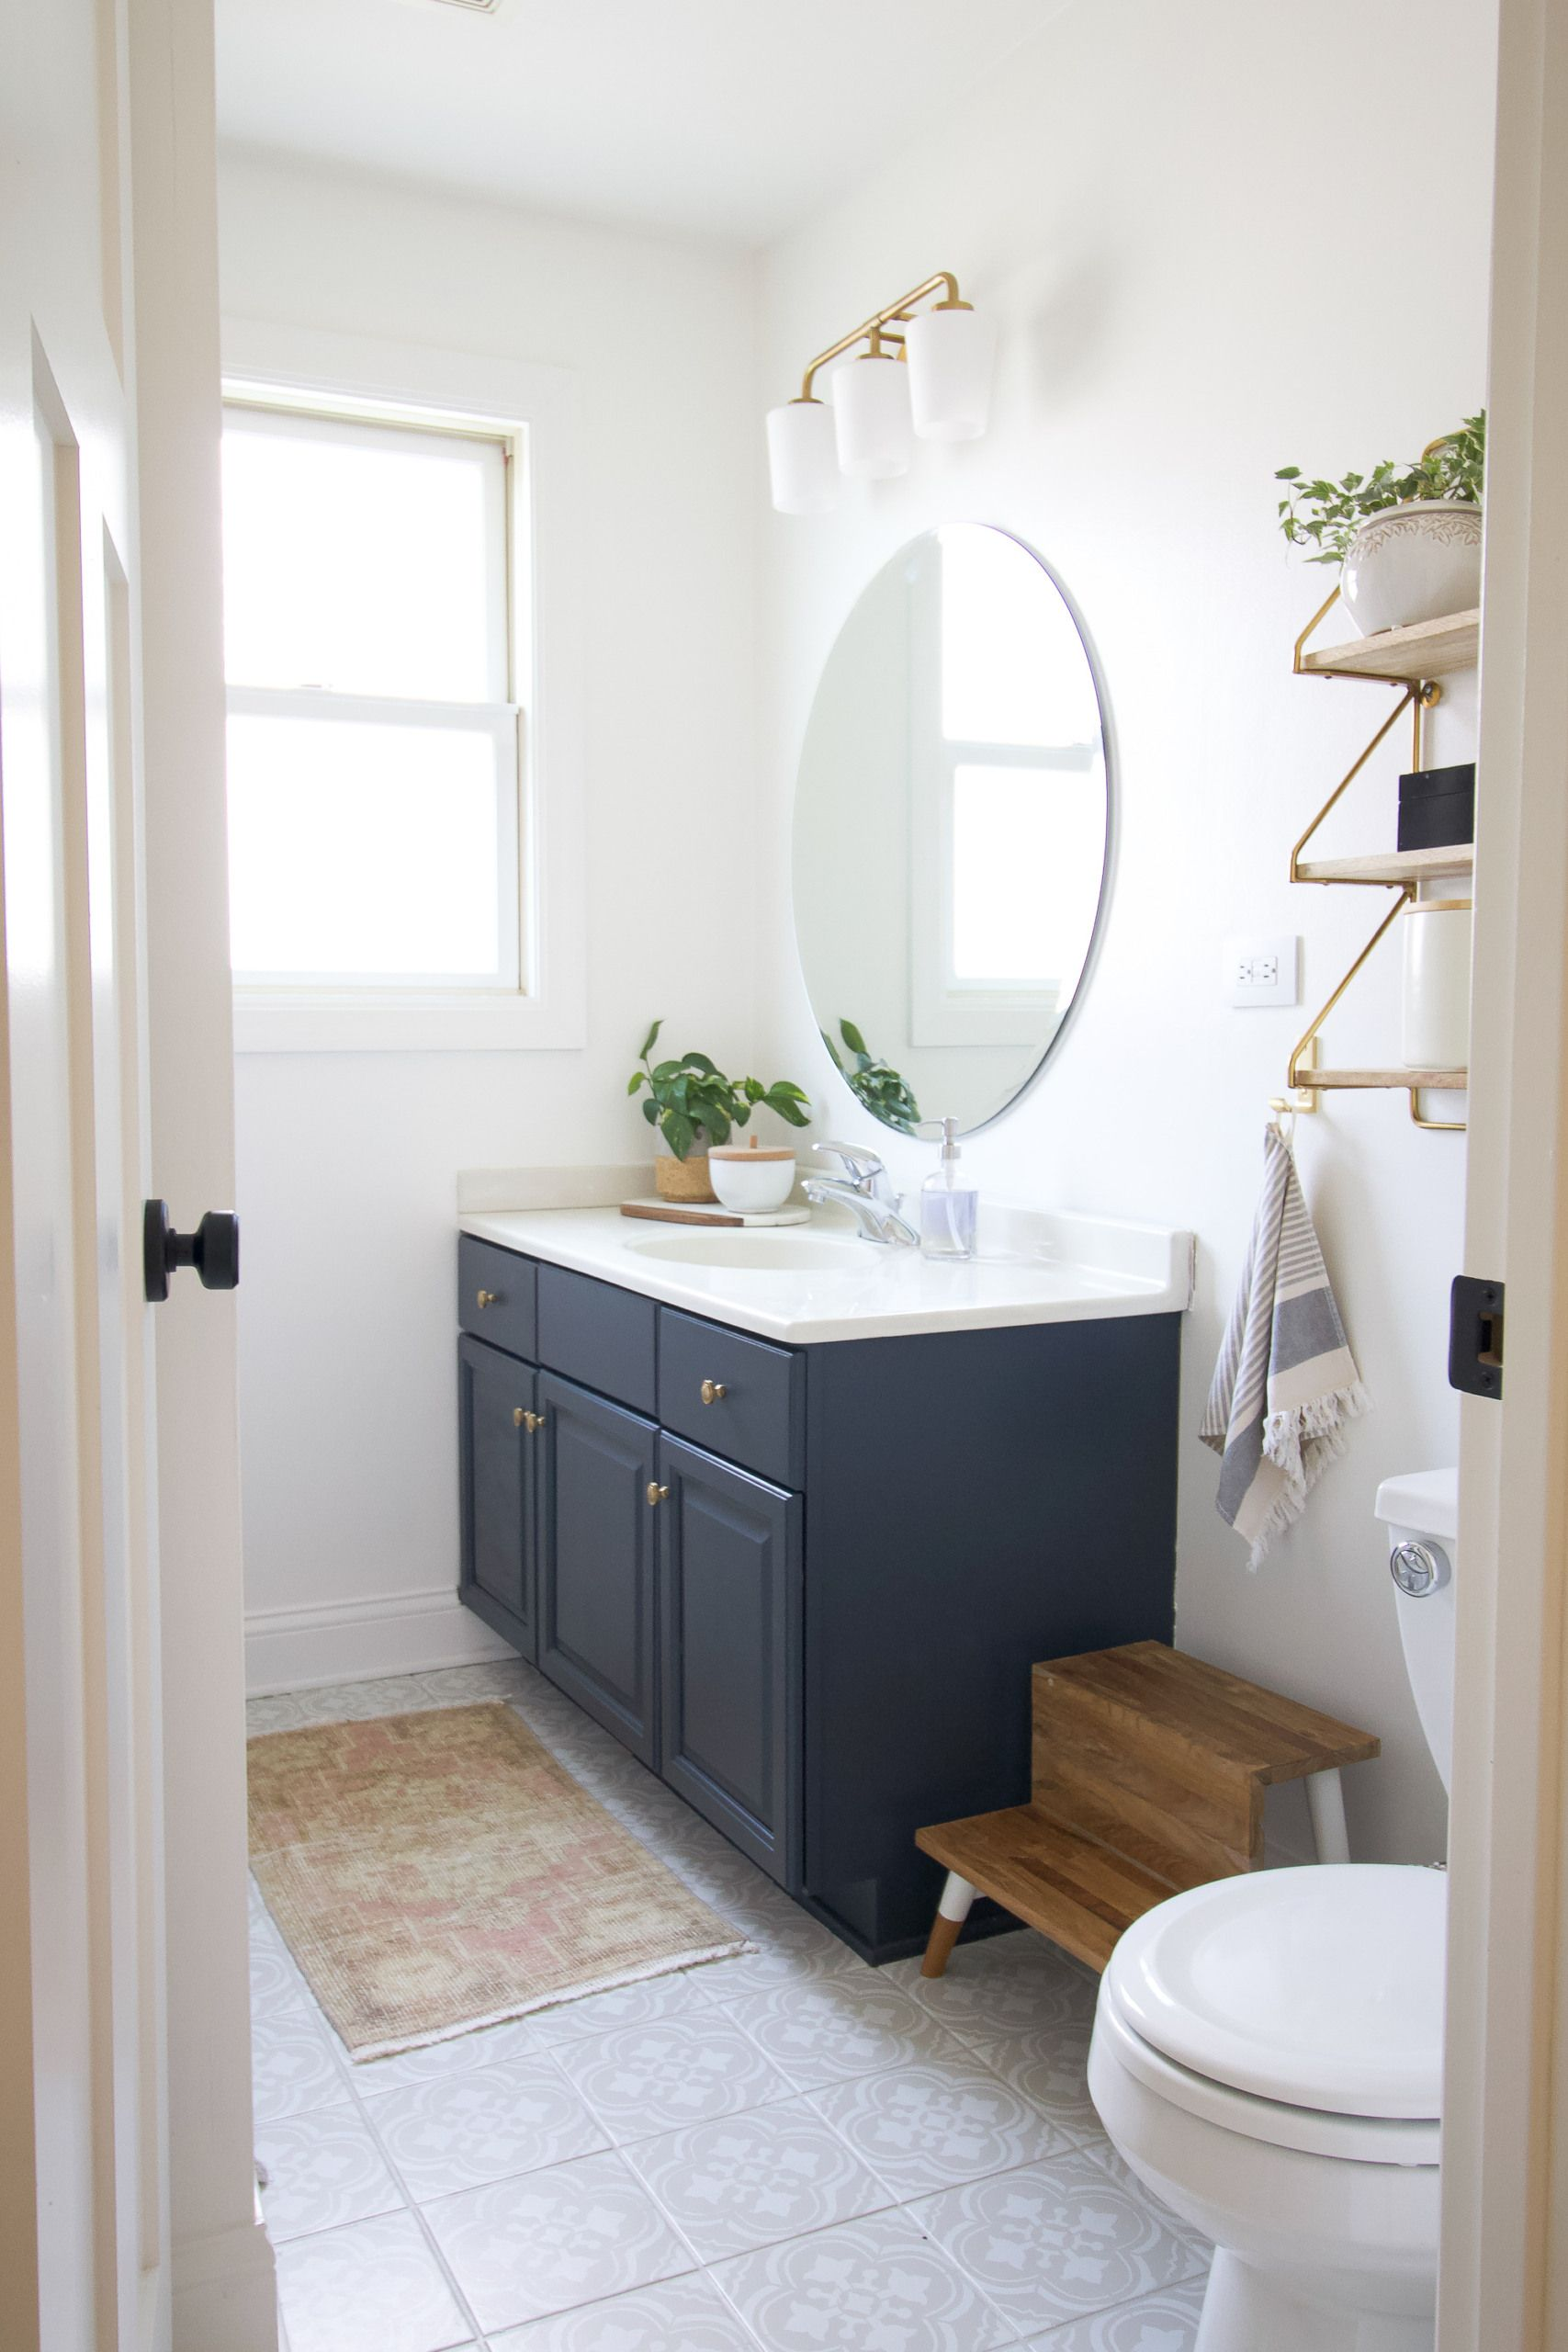 How To Add Value To Your Home The Diy Playbook In 2020 Home Under Cabinet Lighting My Ideal Home